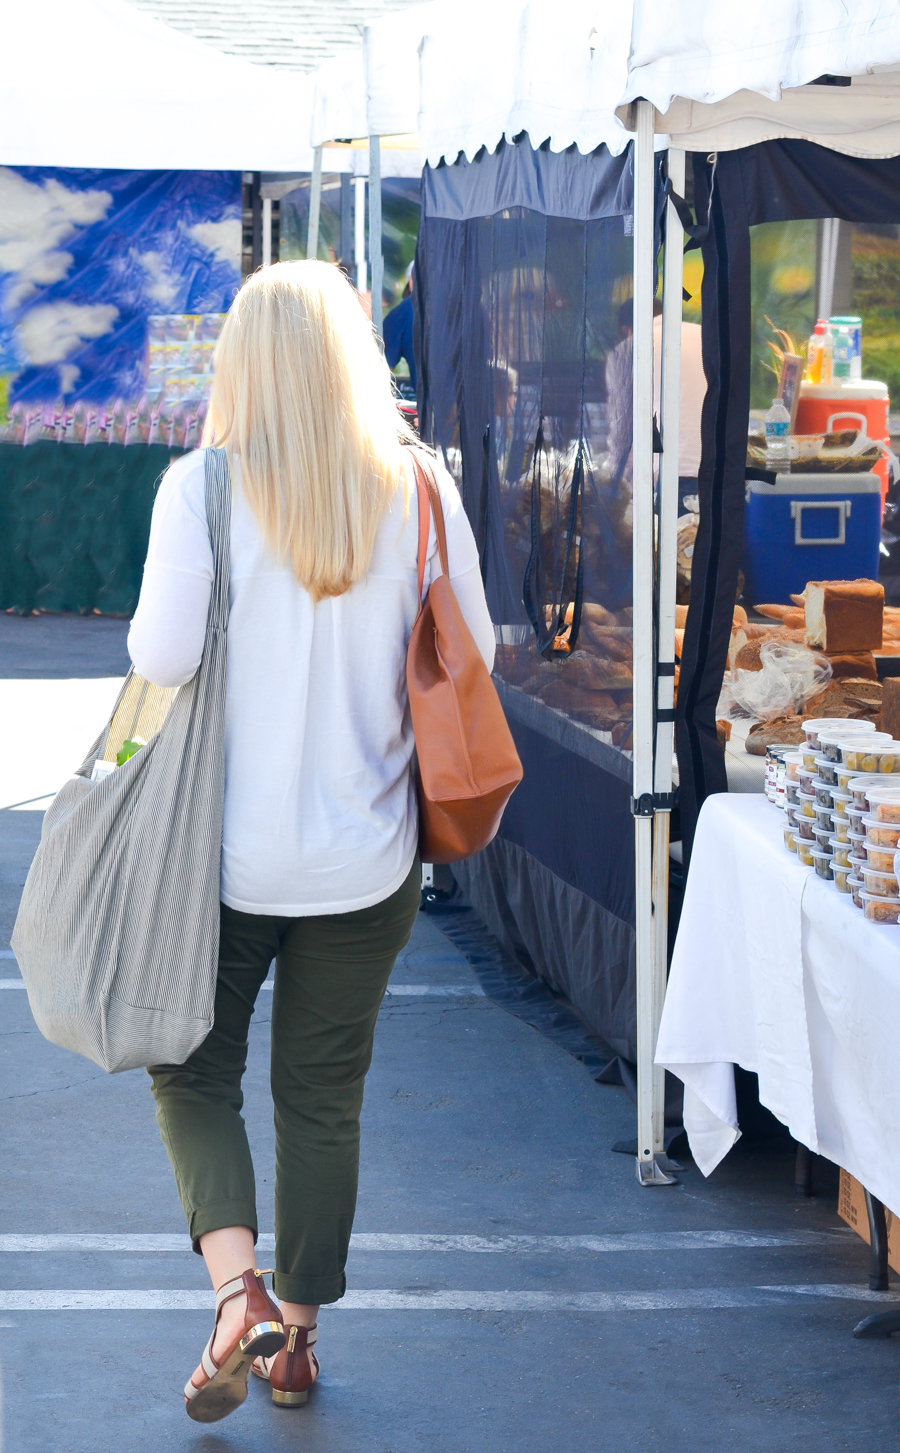 Great Farmers' Market in LA | Things to Do for Free in LA | Calabasas Farmers' Market Photos + Review | Luci's Morsels :: LA Travel Lifestyle Blogger